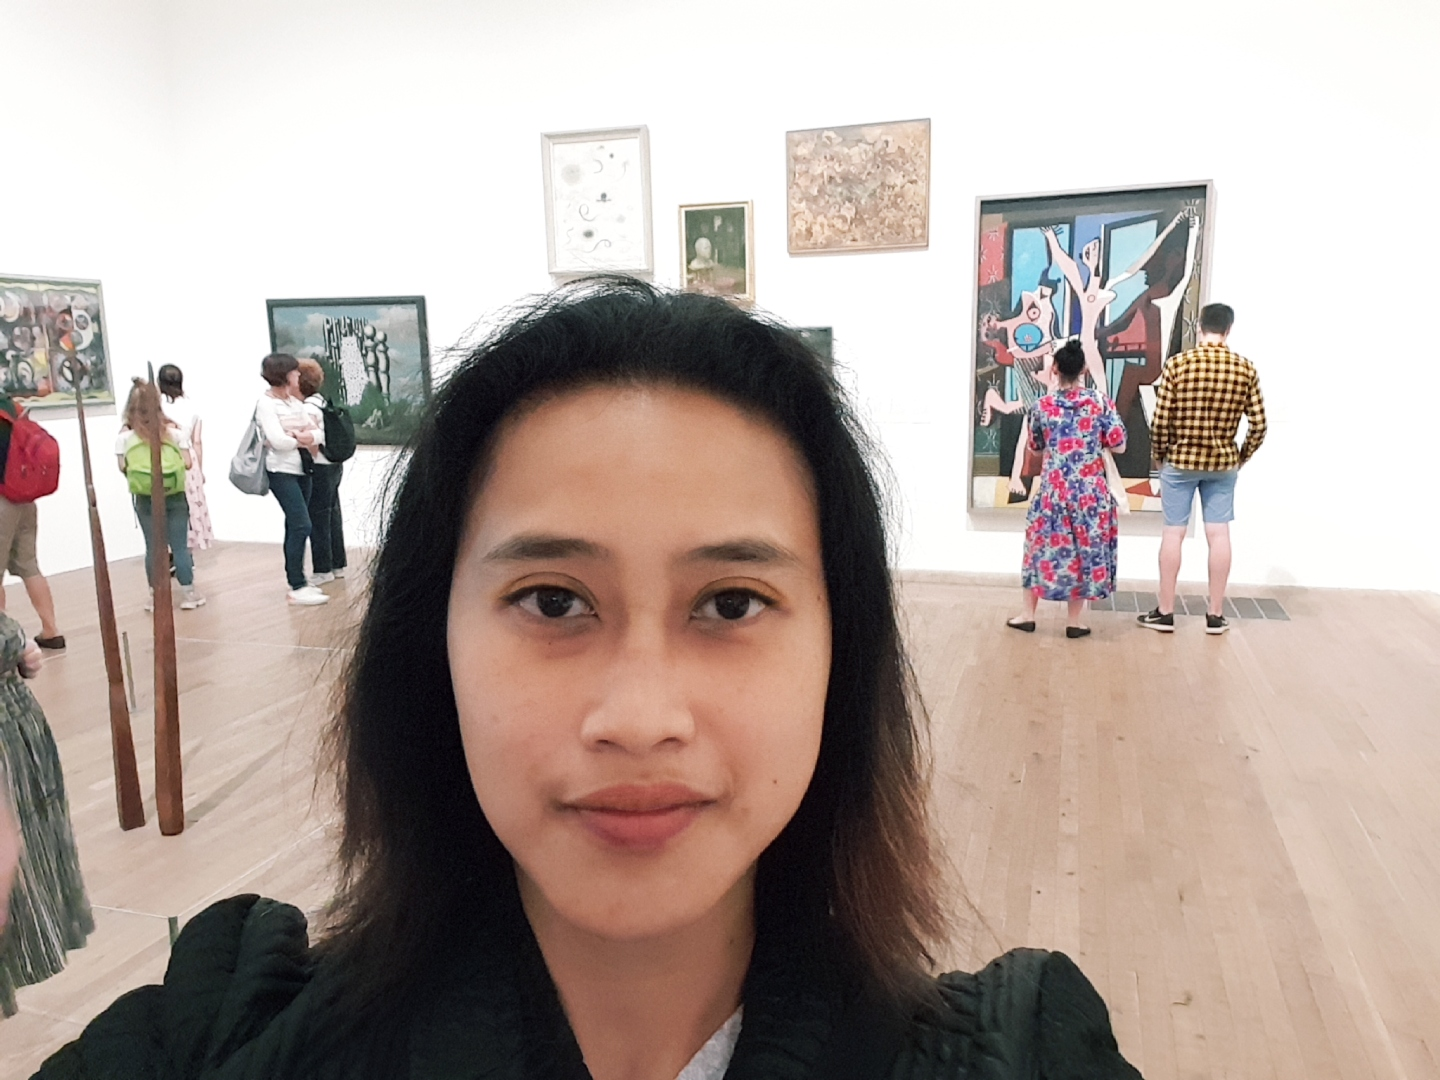 A girl in Tate Modern art gallery